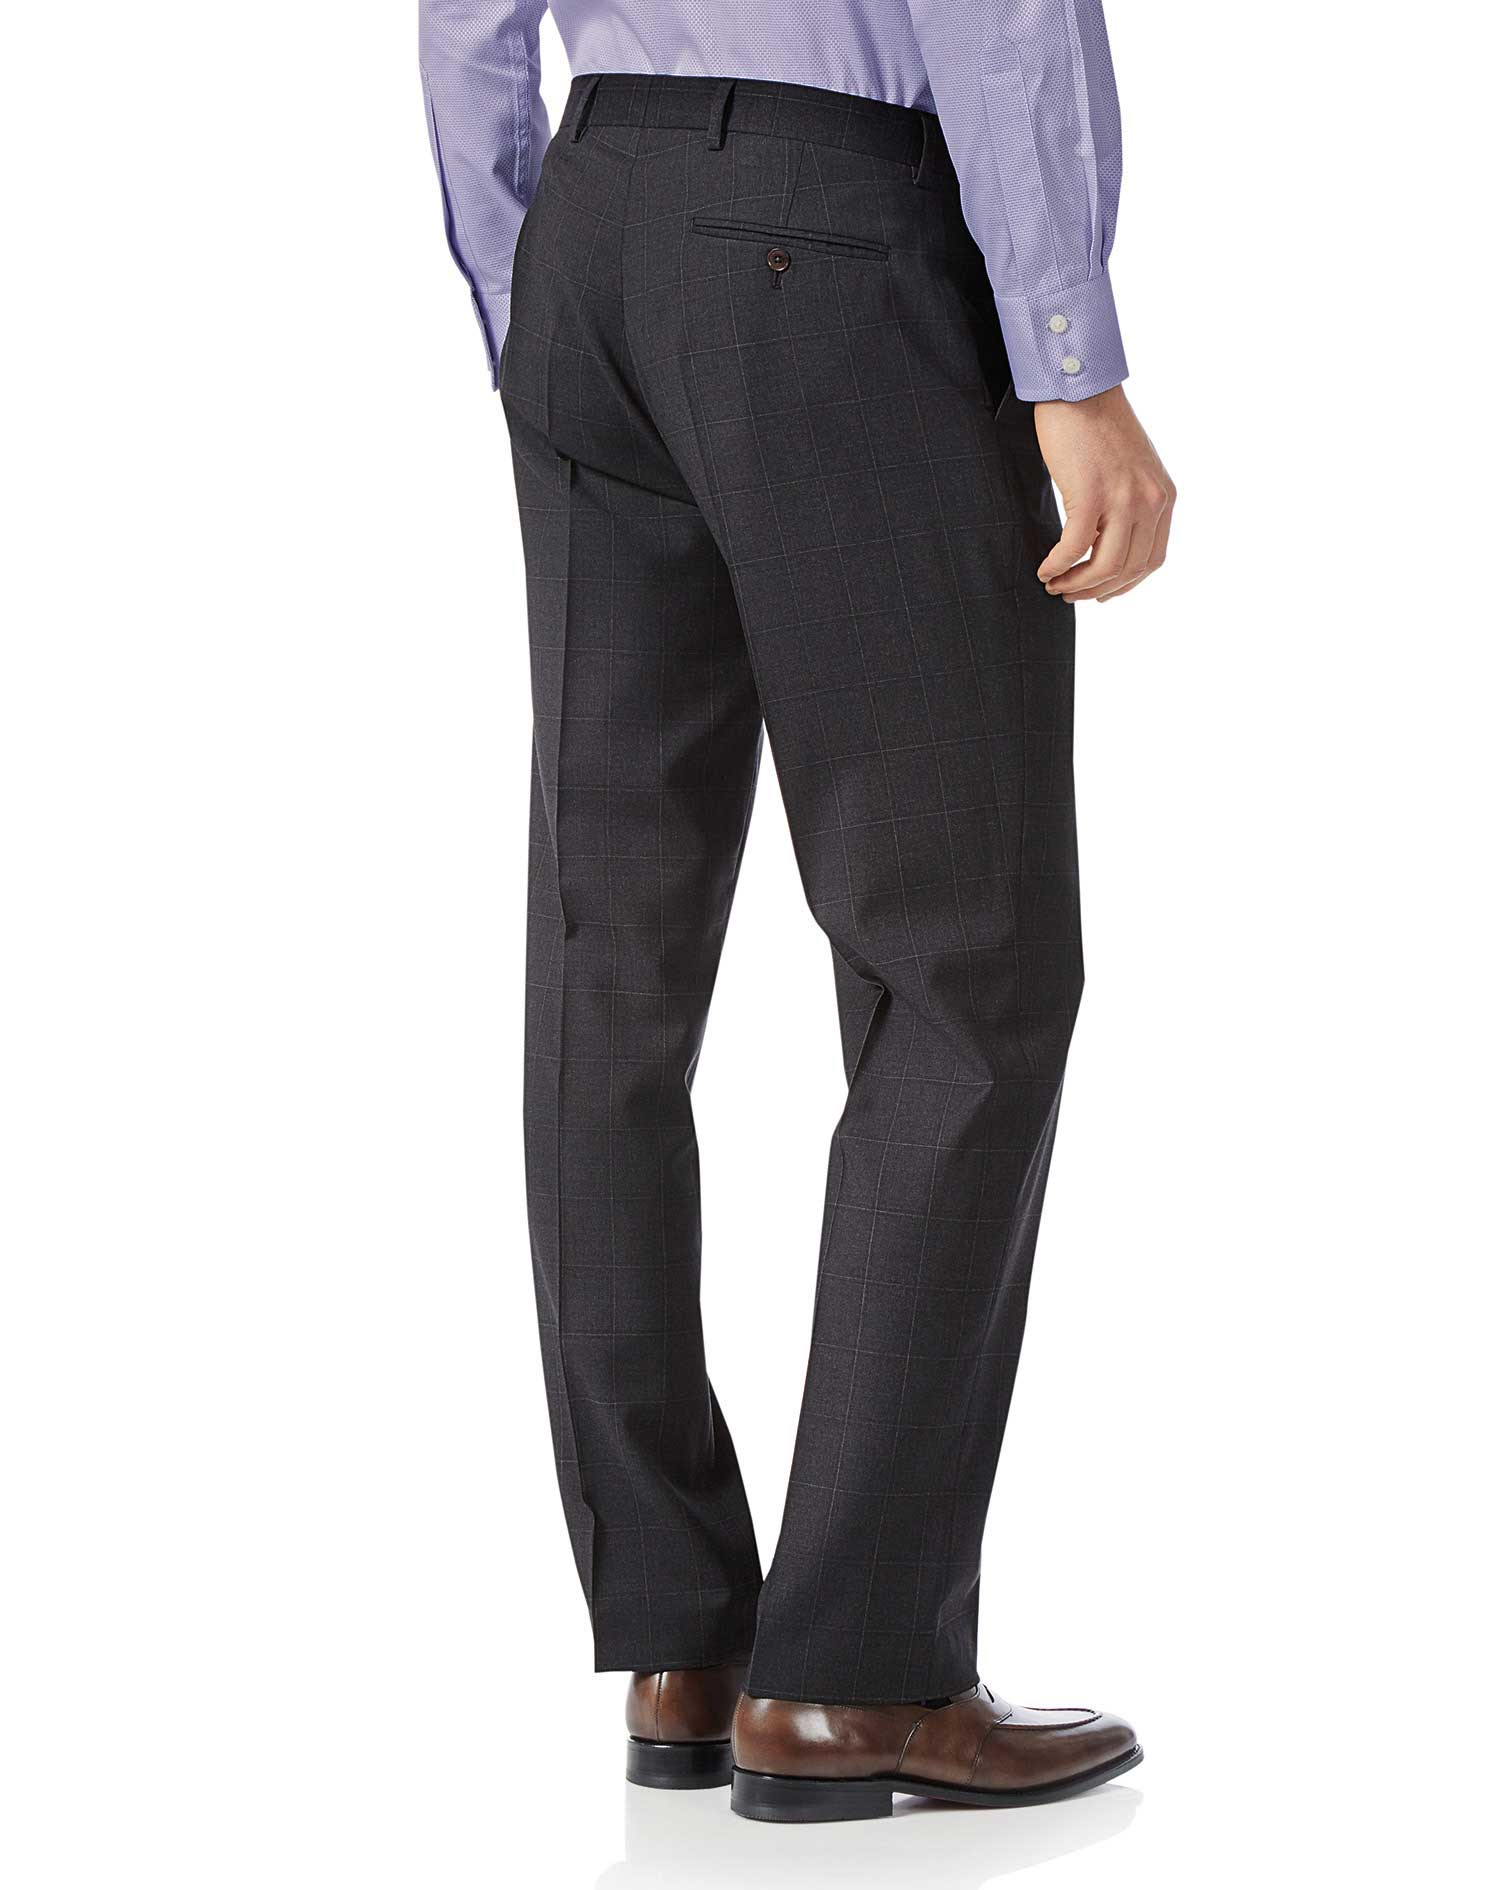 Grey check classic fit Italian suit trousers